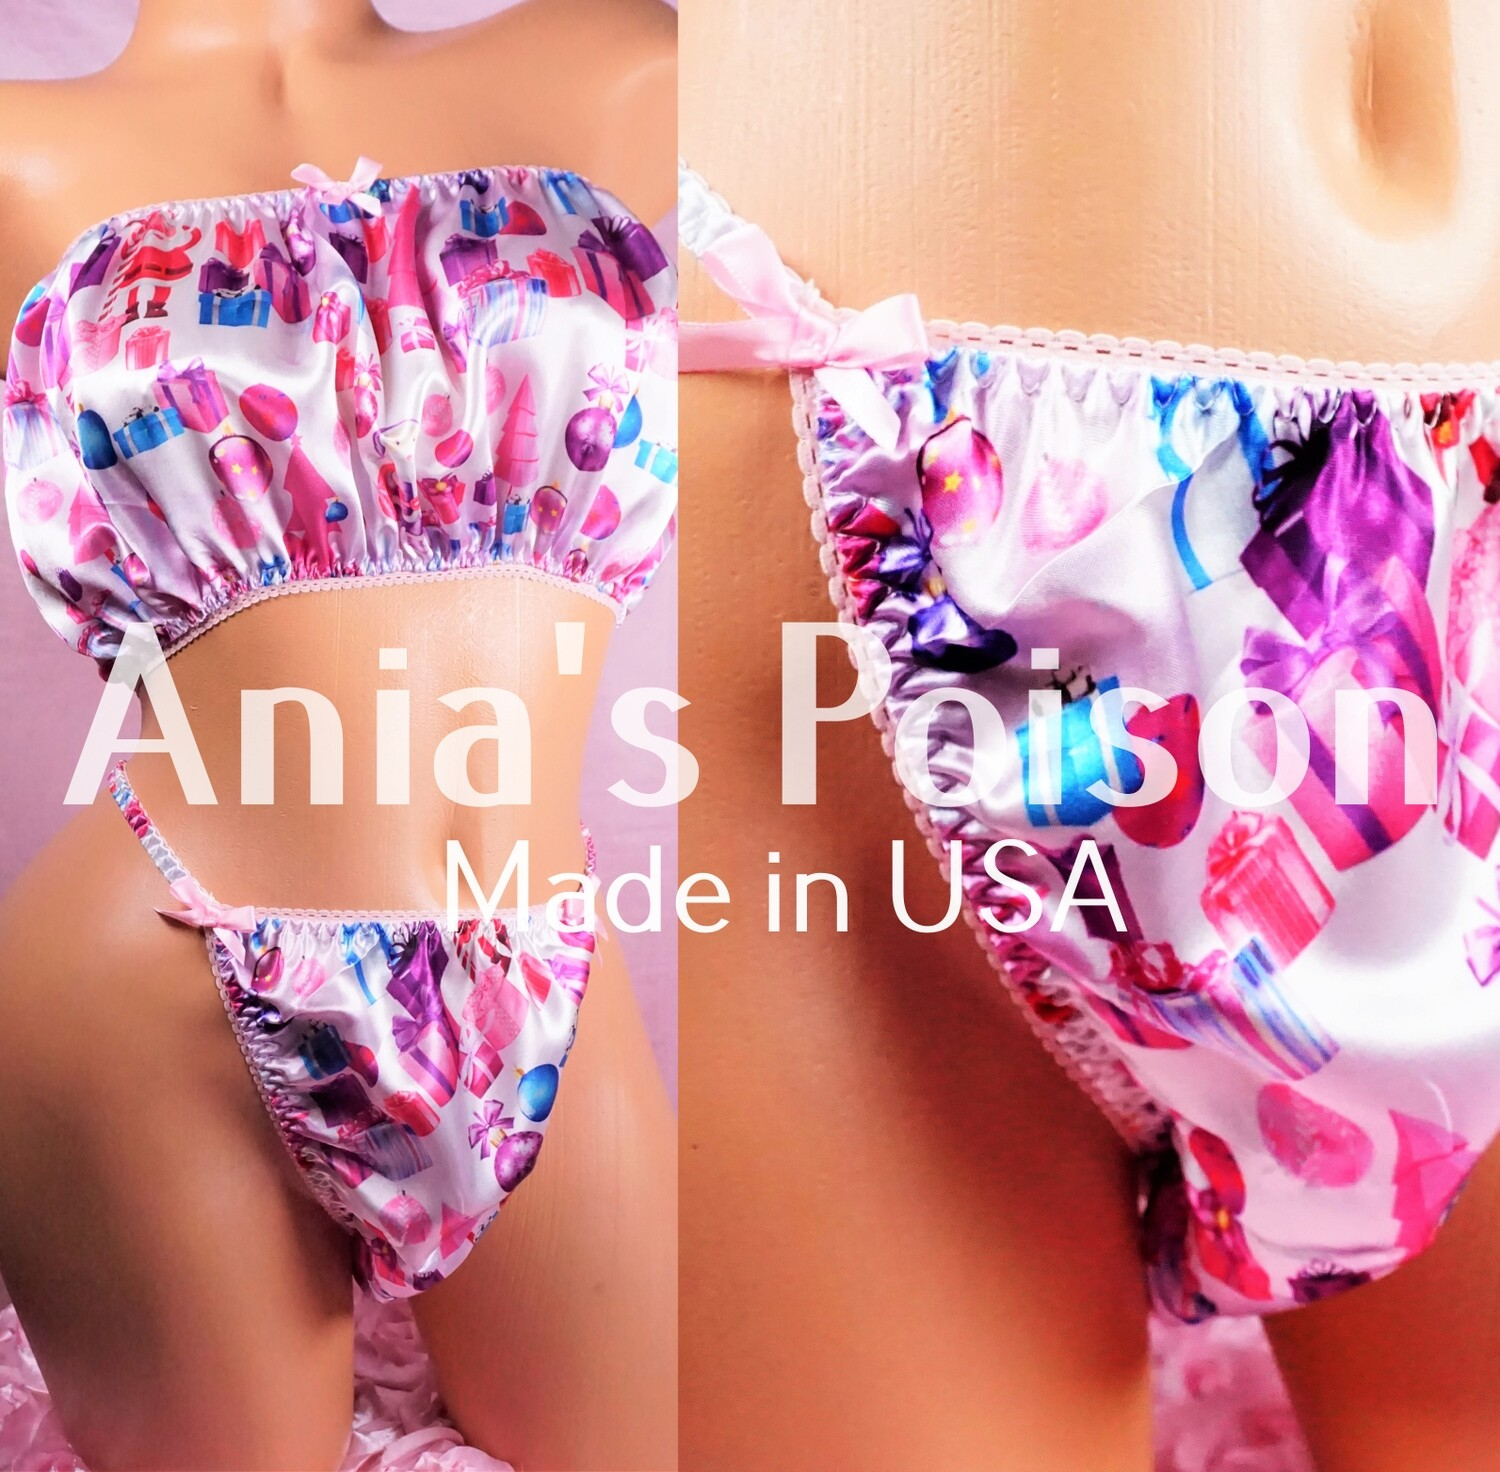 Ania's Poison Christmas Pink Gifts Cute Santa Print 100% polyester silky soft string bikini sissy mens underwear panties